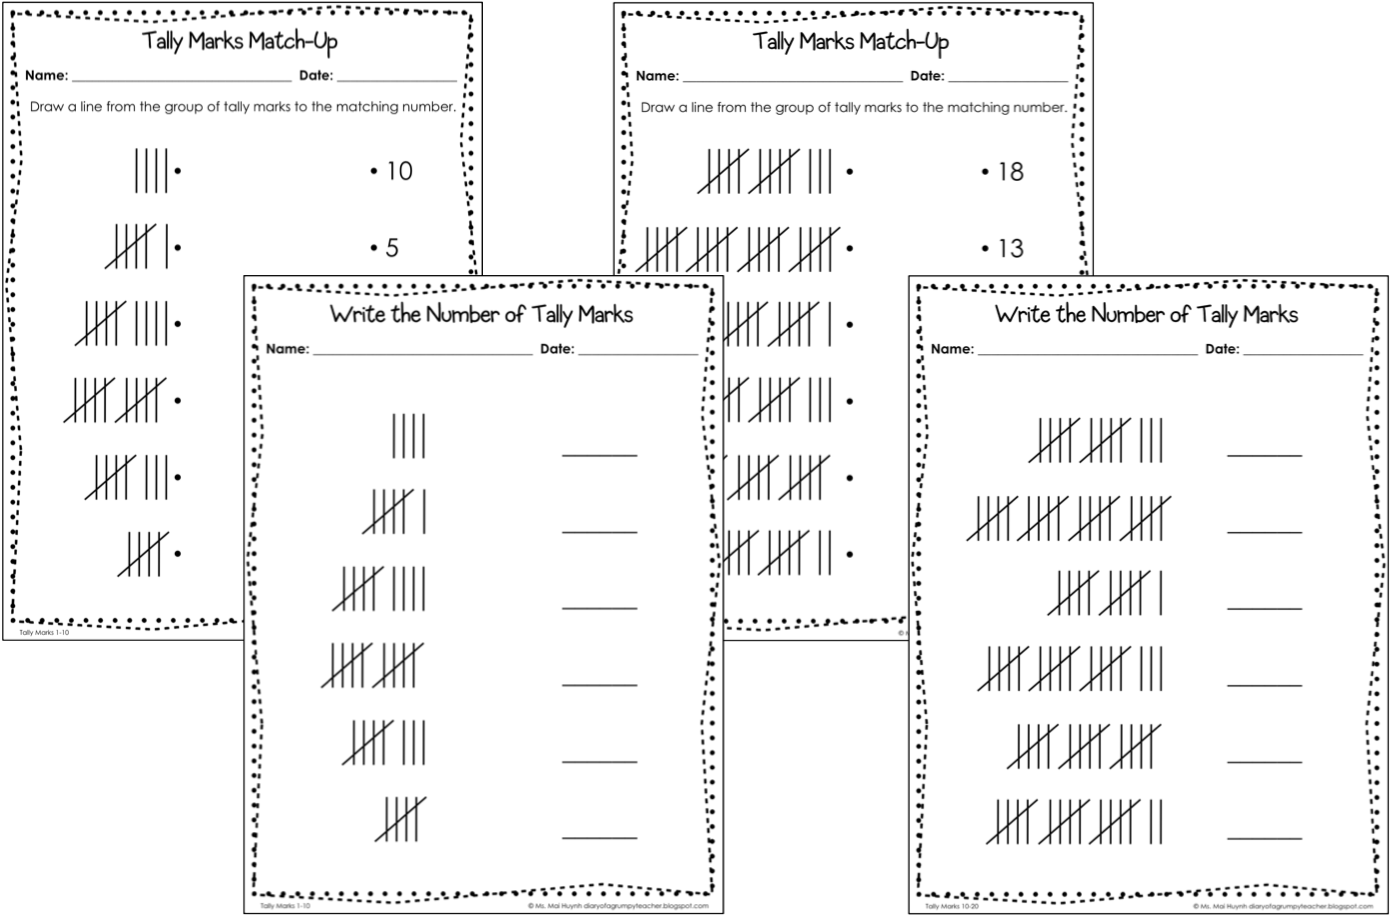 Tally Mark Worksheet Easy